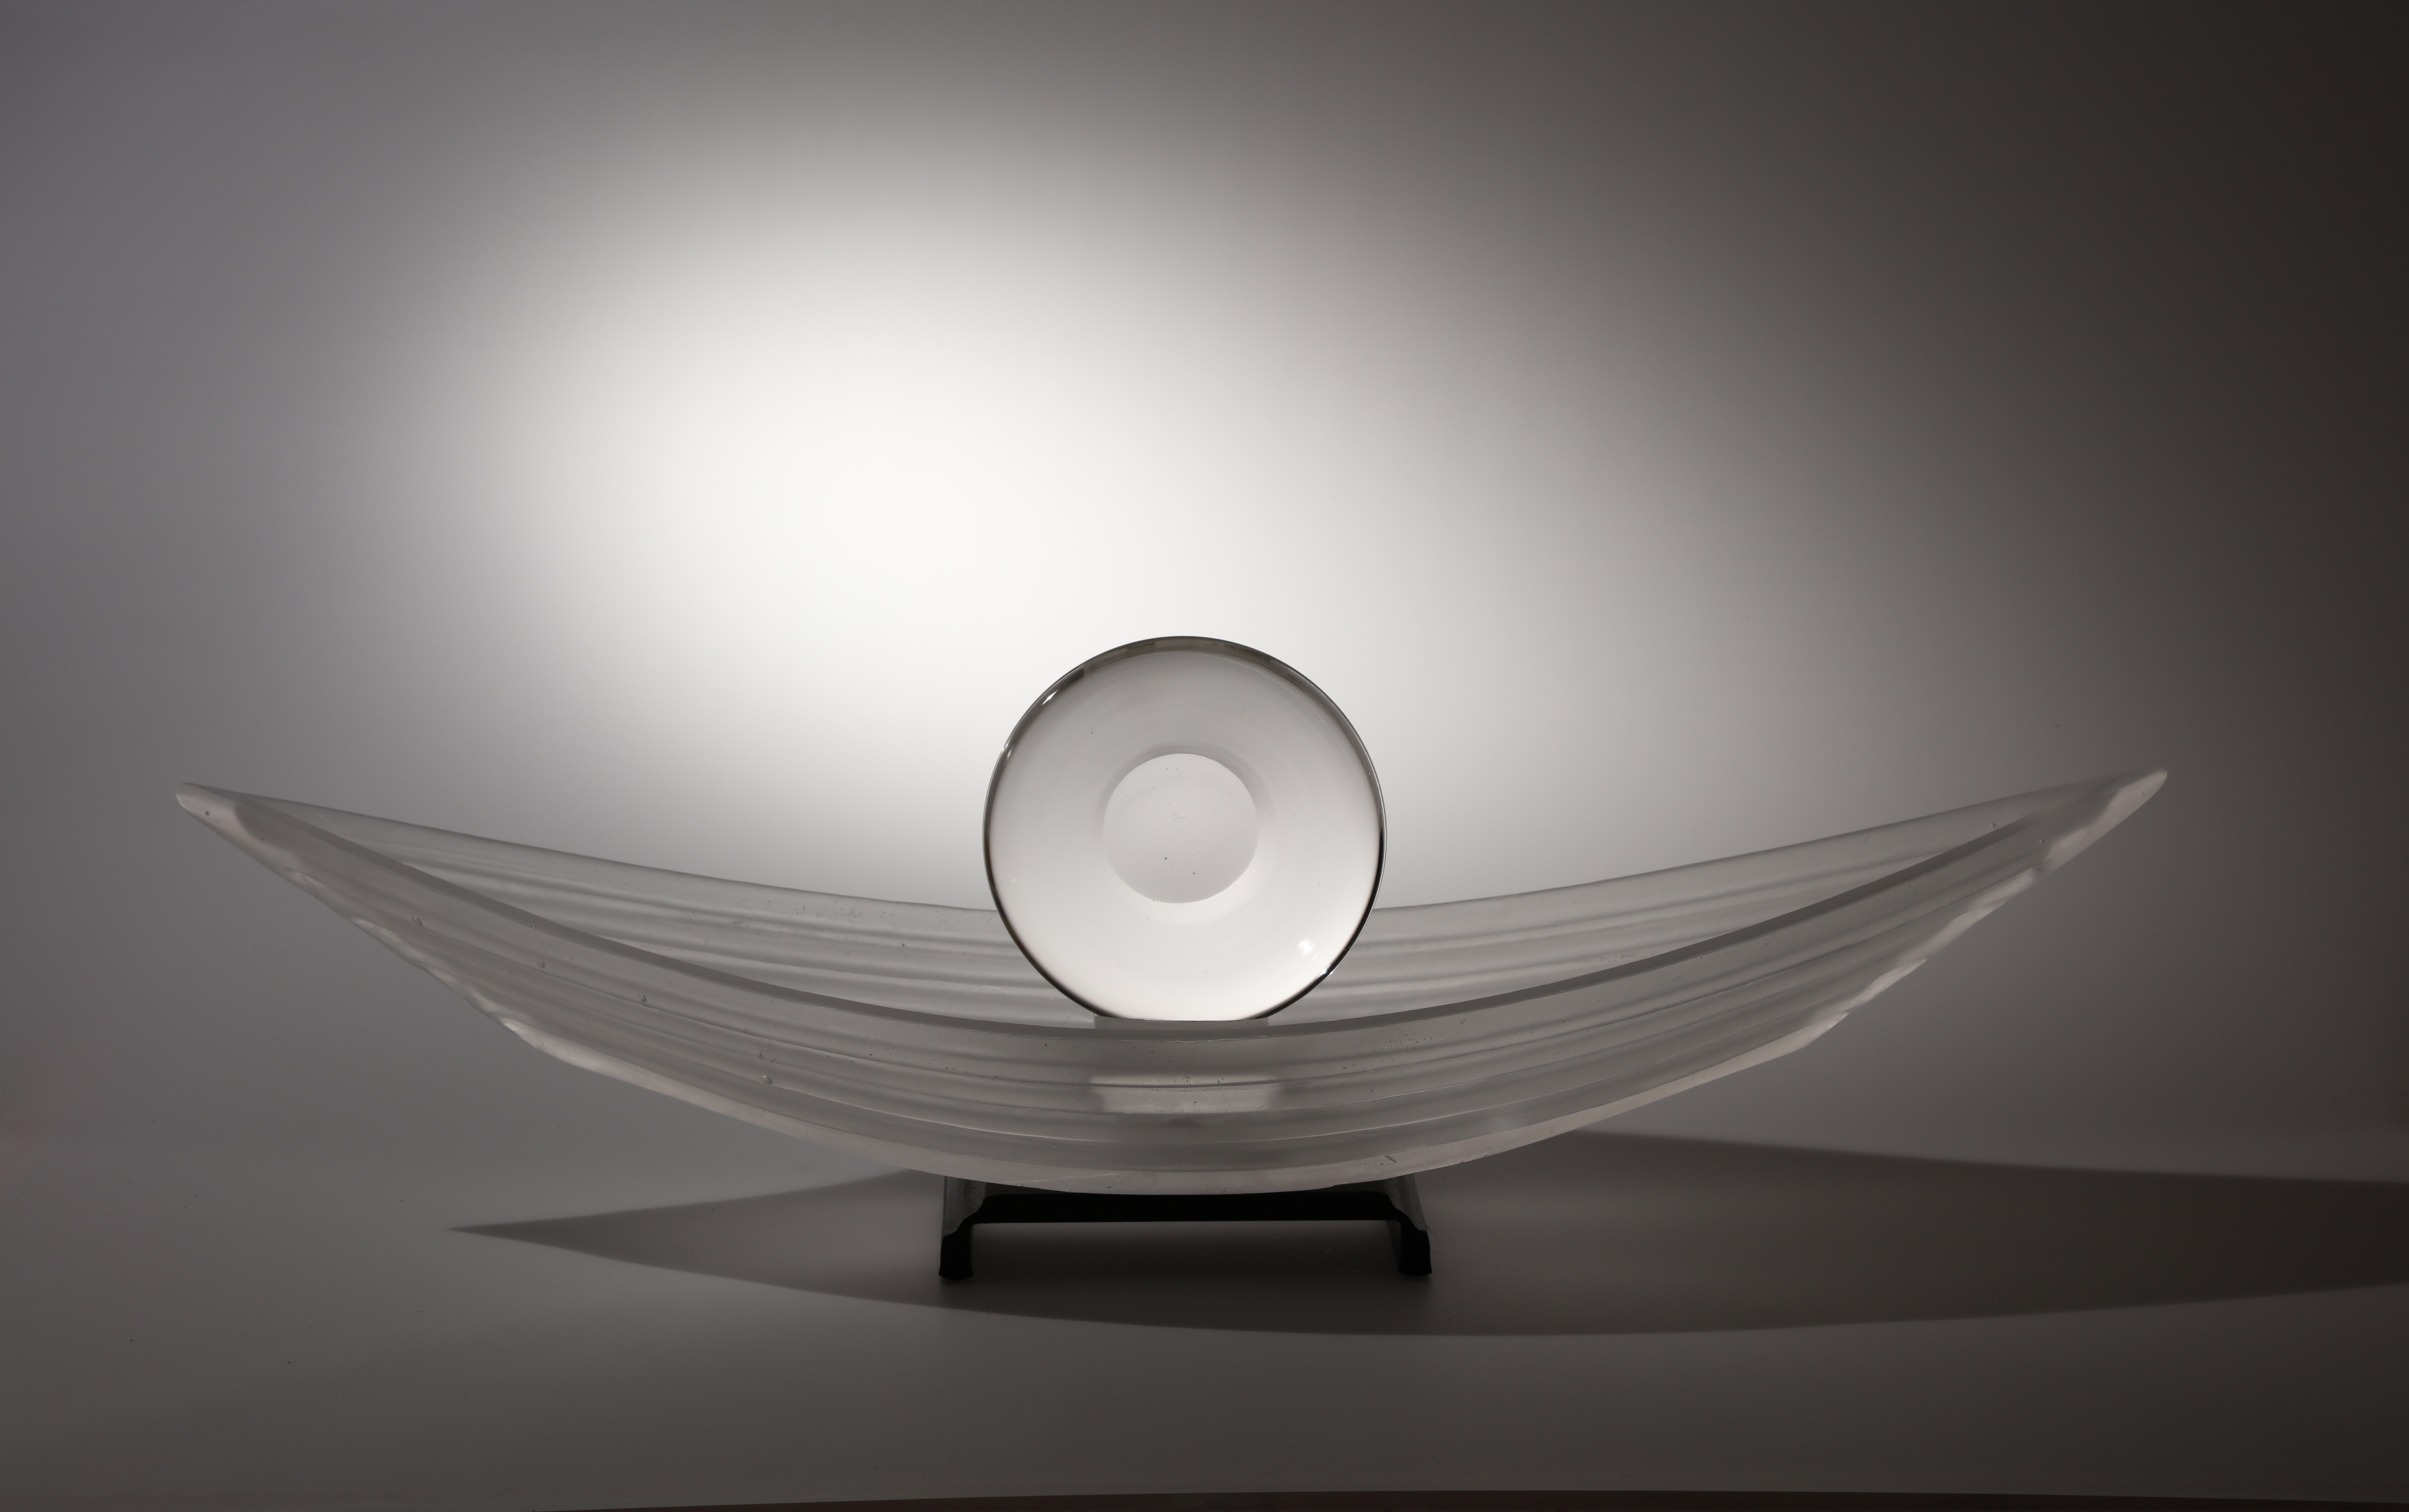 Sculpture of glass boat with glass disk in it.